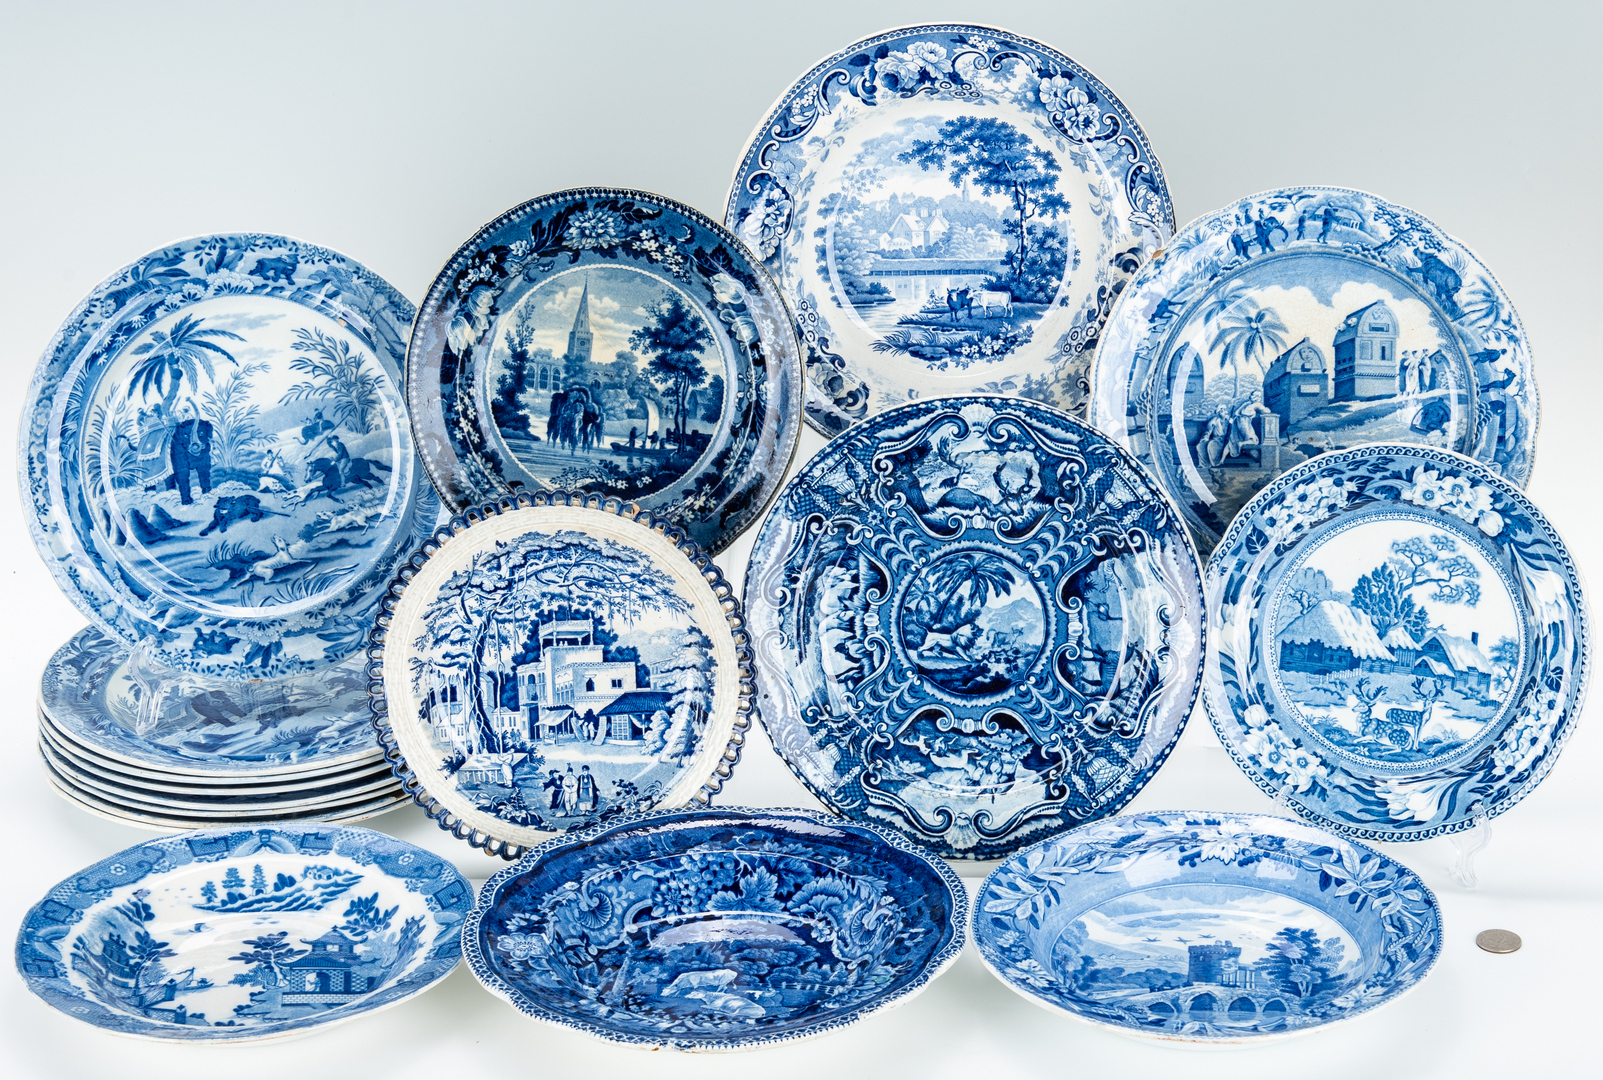 Lot 266: 17 Historical Staffordshire & Spode Items